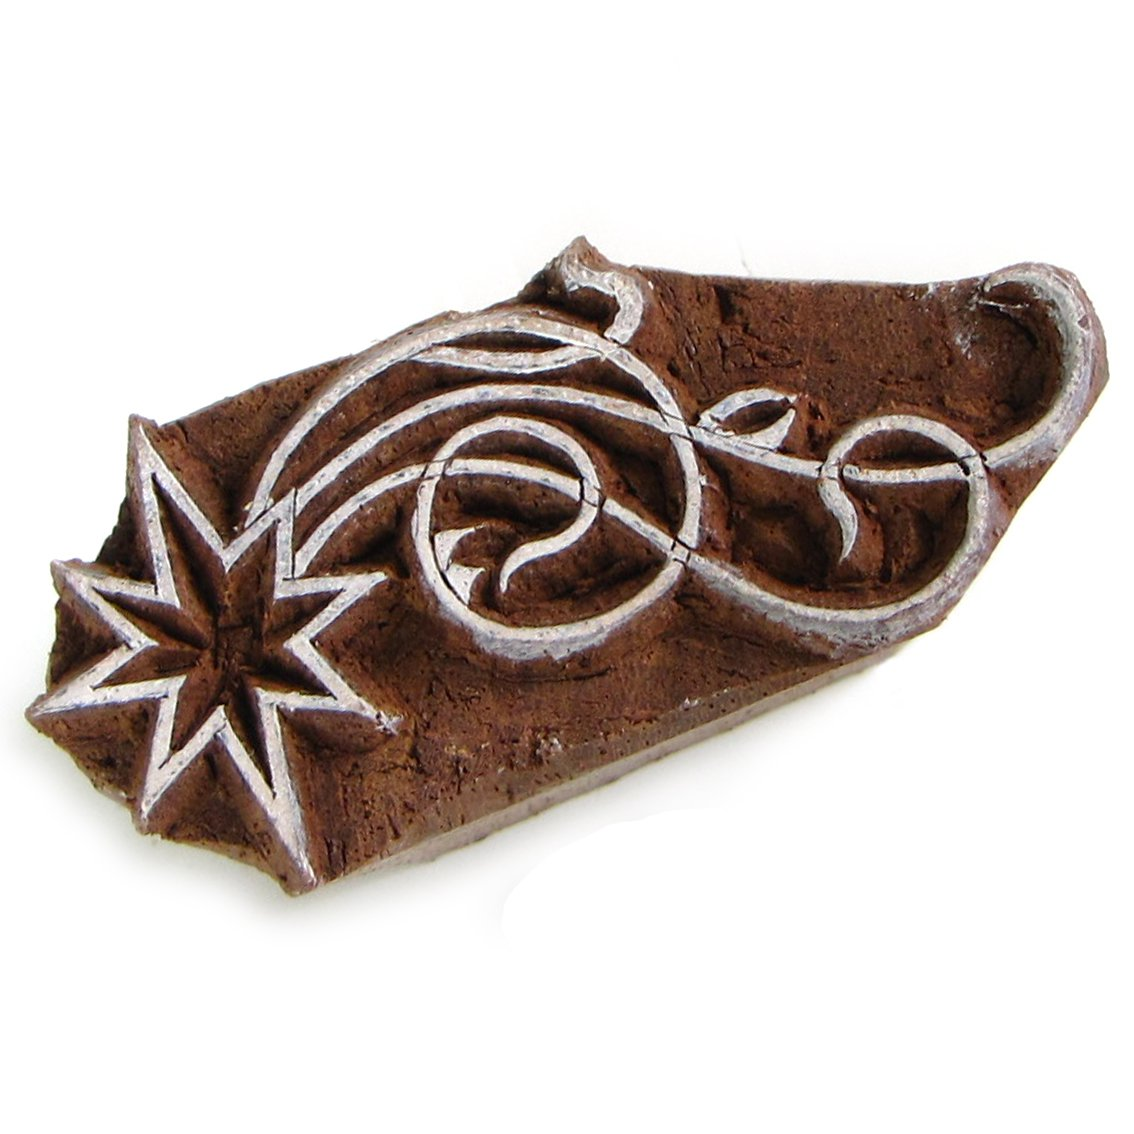 Stamping star solid wood block ink stamp 2in handmade from recycled wood India handicrafts